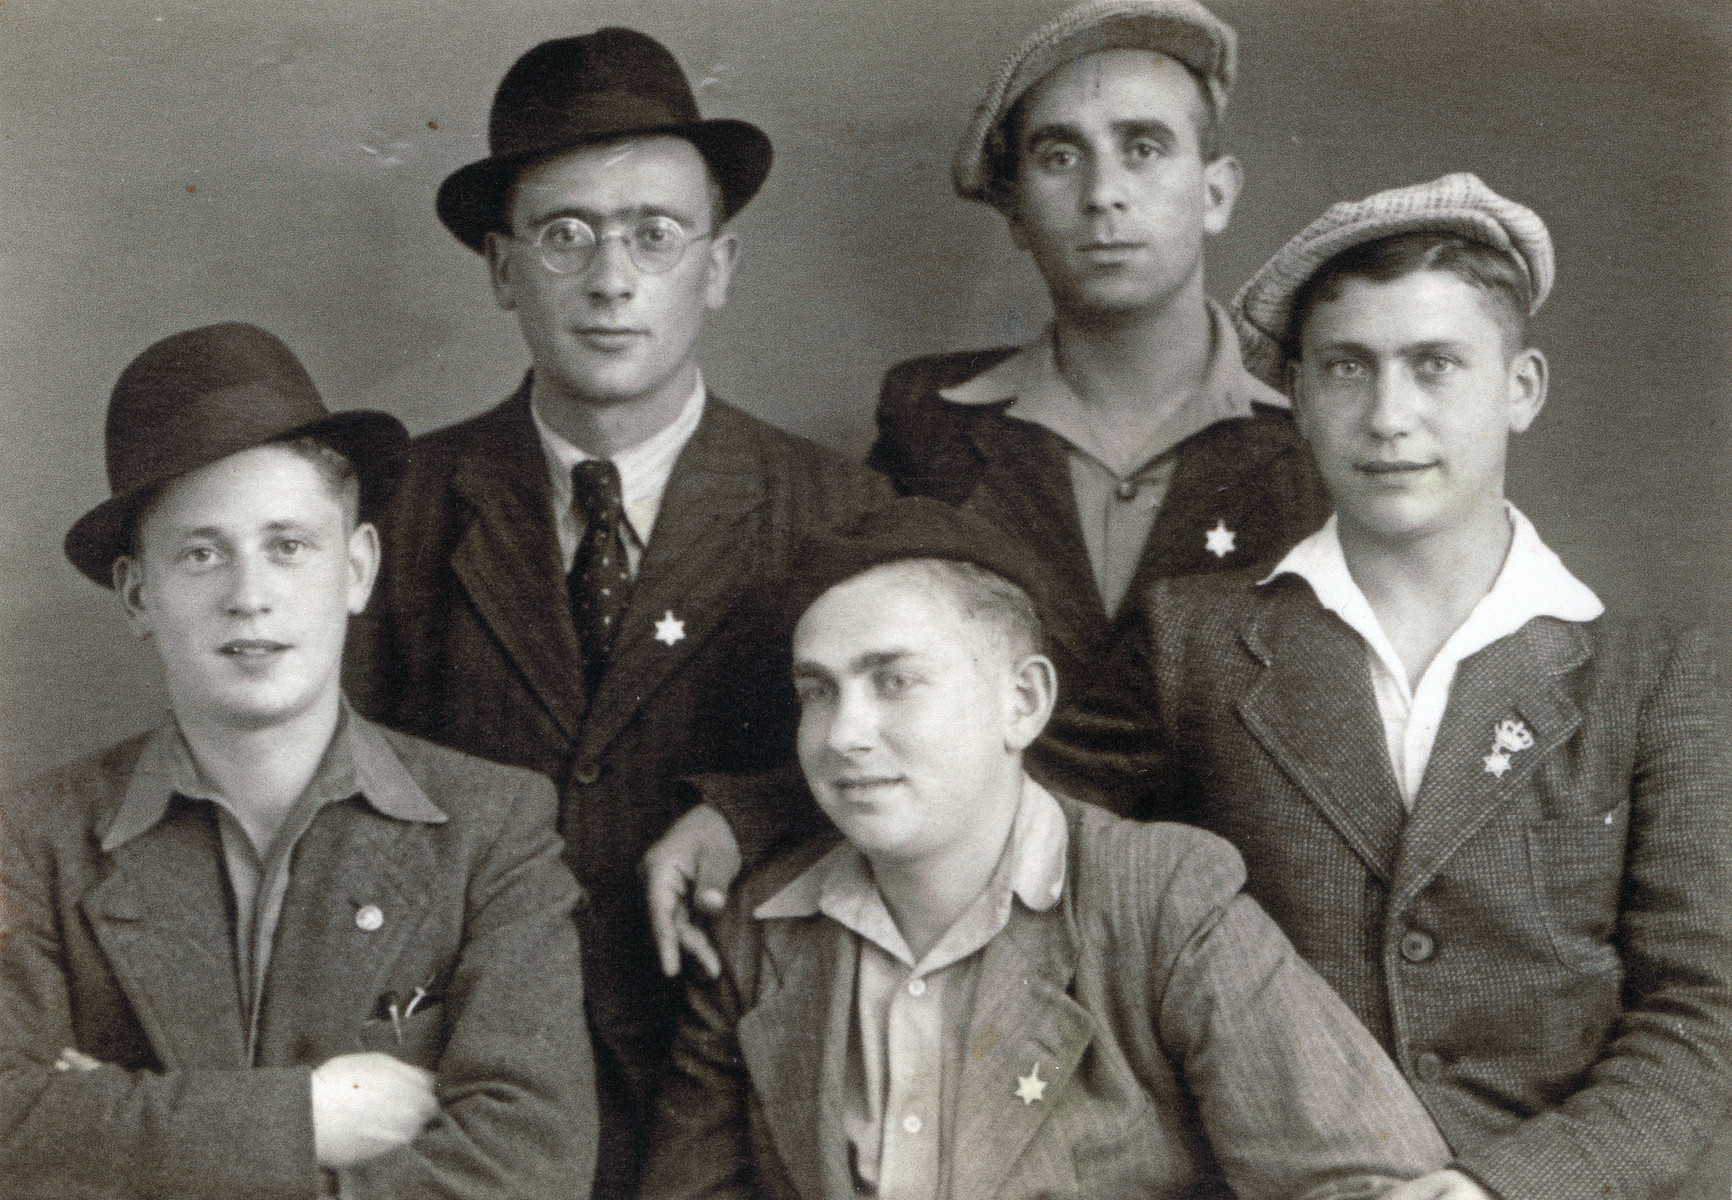 Group portrait of religious Jewish youth in an unidentified displaced persons camp.  Among those pictured are Moshe Braunfeld (lower left) and Leibish Braunfeld (right).  They sent this photograph to their sister Elissa in Palestine to prove they were still alive.